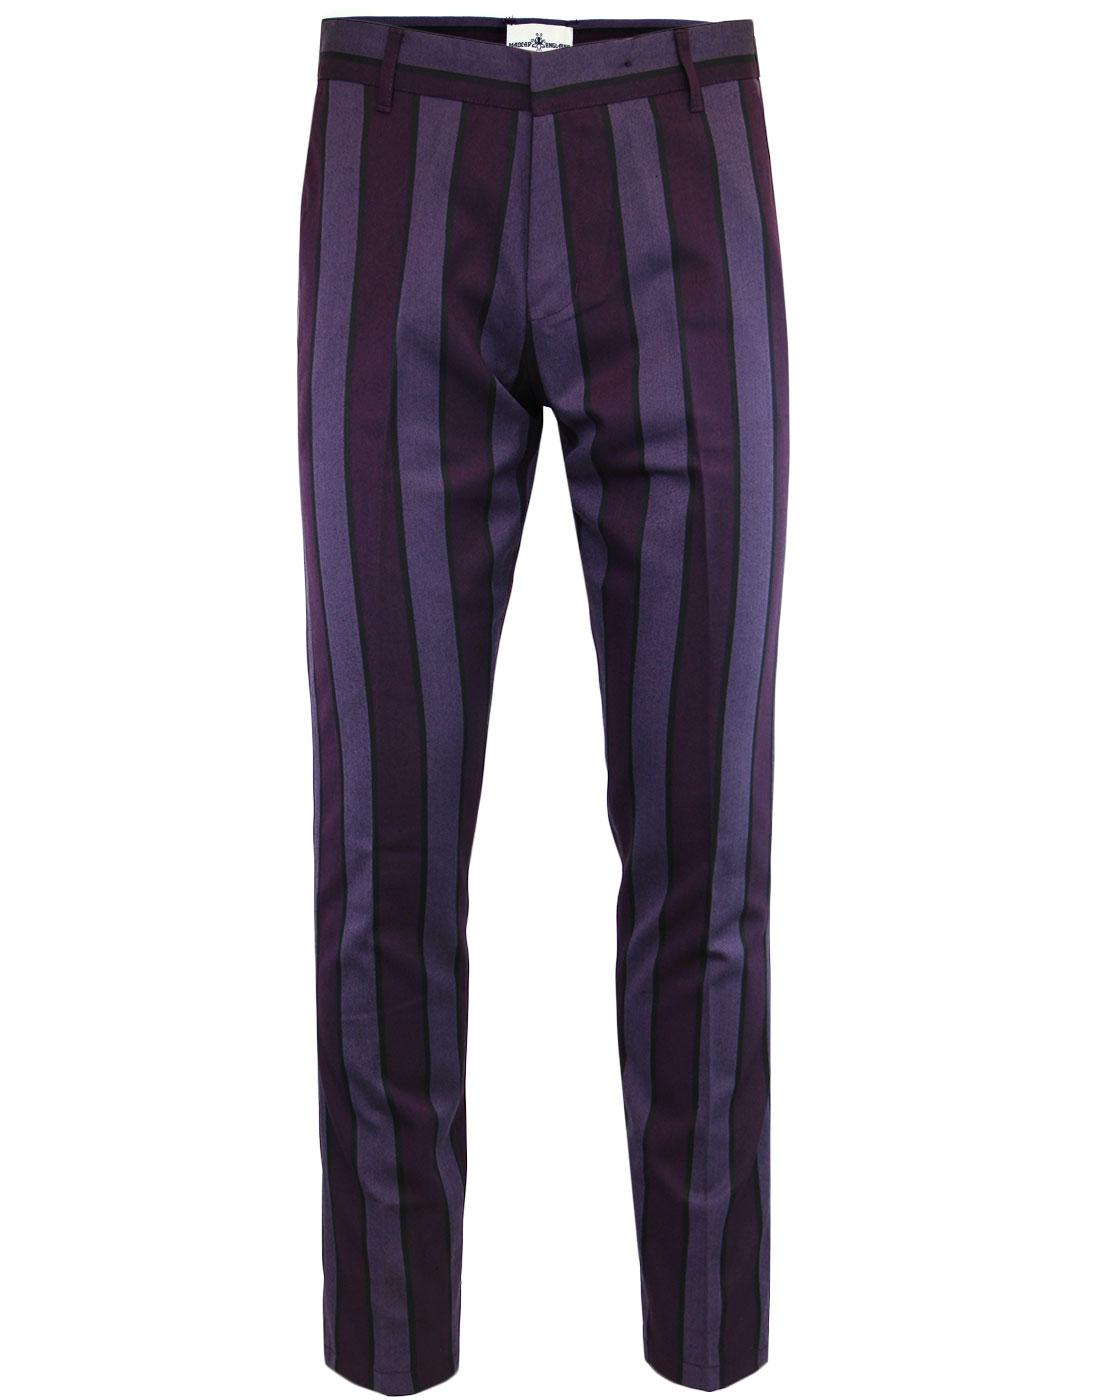 madcap england retro 60s mod stripe slim trousers